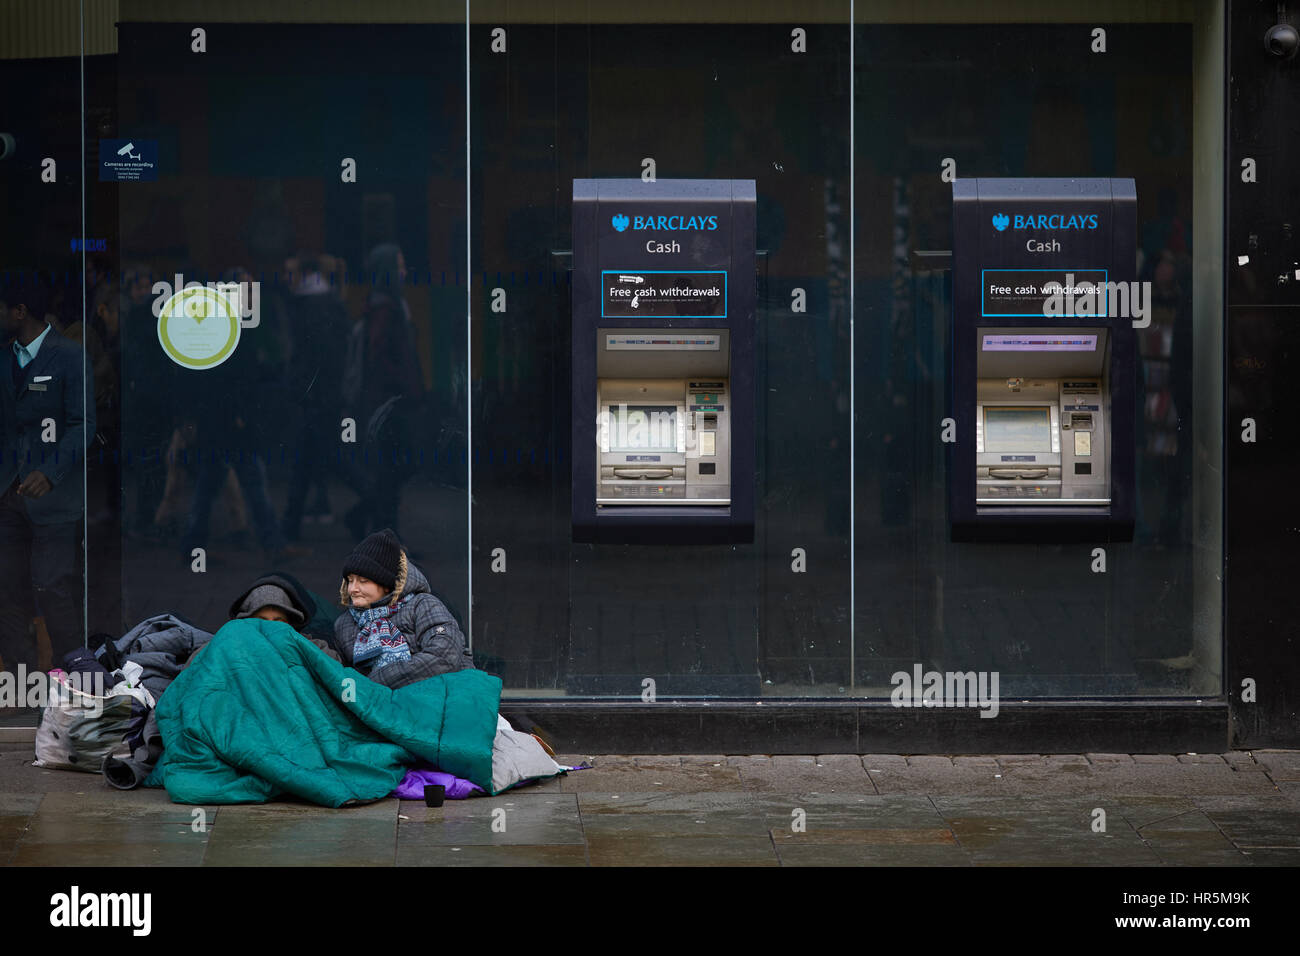 Barclays bank exterior Manchester Market Street homeless couple sit near ATM  Cash Machines    England,UK. - Stock Image